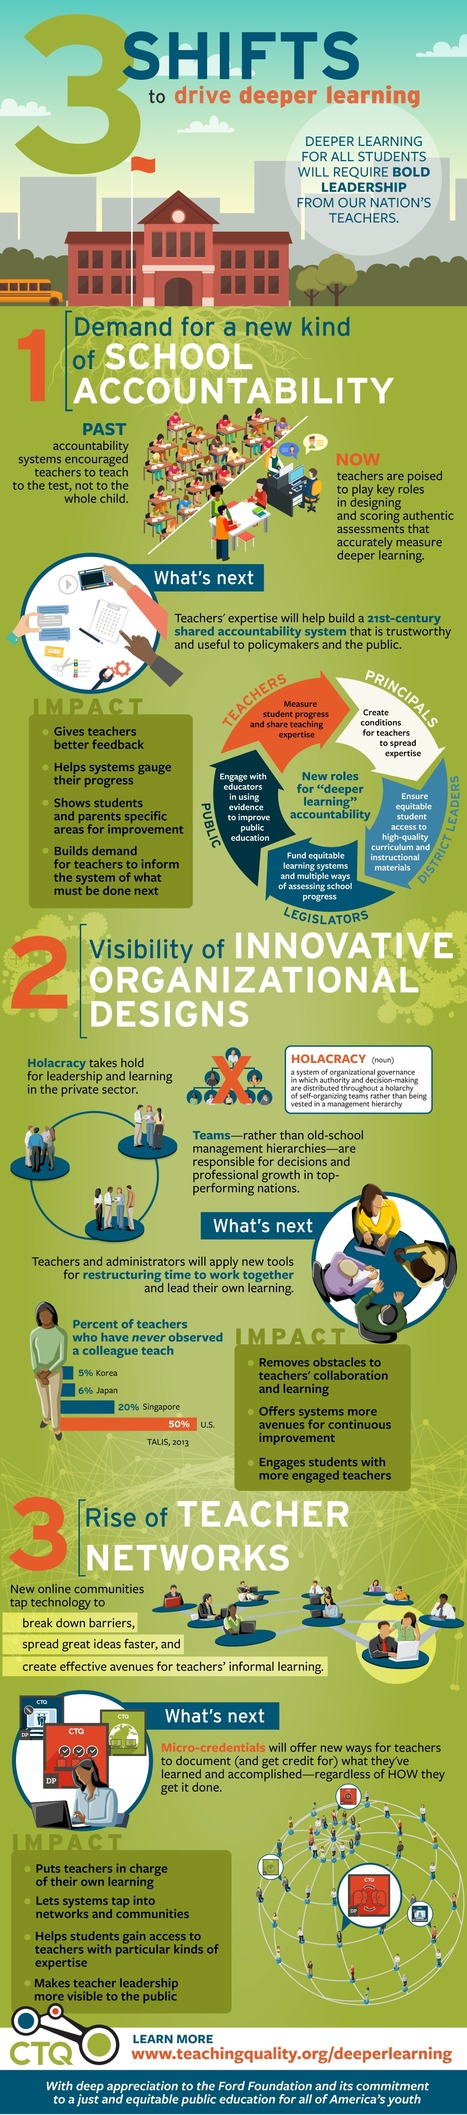 Teacher leadership & deeper learning for all students [#Infographic] | #CTQ #CTQCollab | Soup for thought | Scoop.it